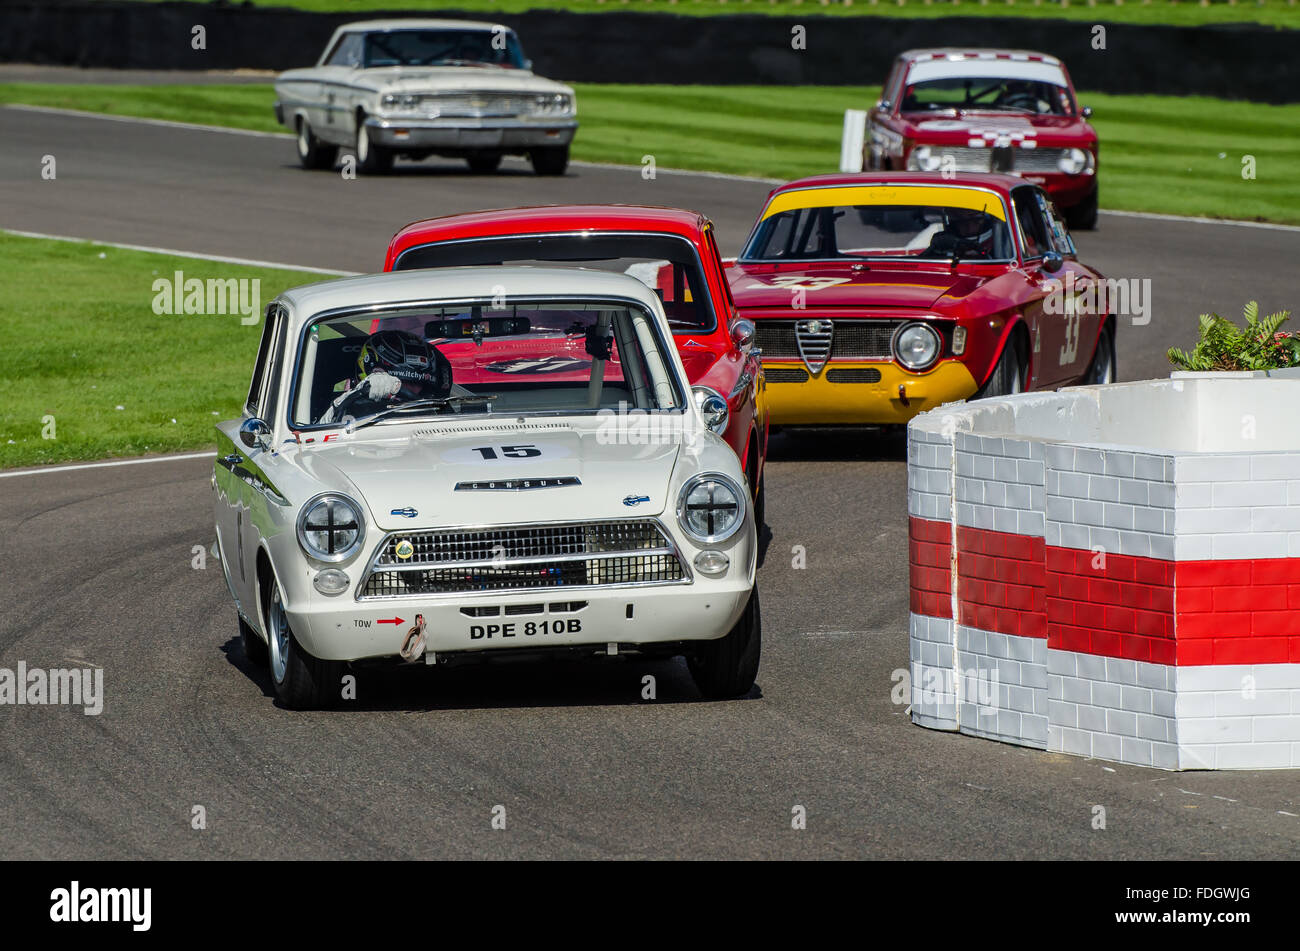 1963-lotus-cortina-mk1-is-owned-and-was-raced-by-matt-neal-at-the-FDGWJG.jpg